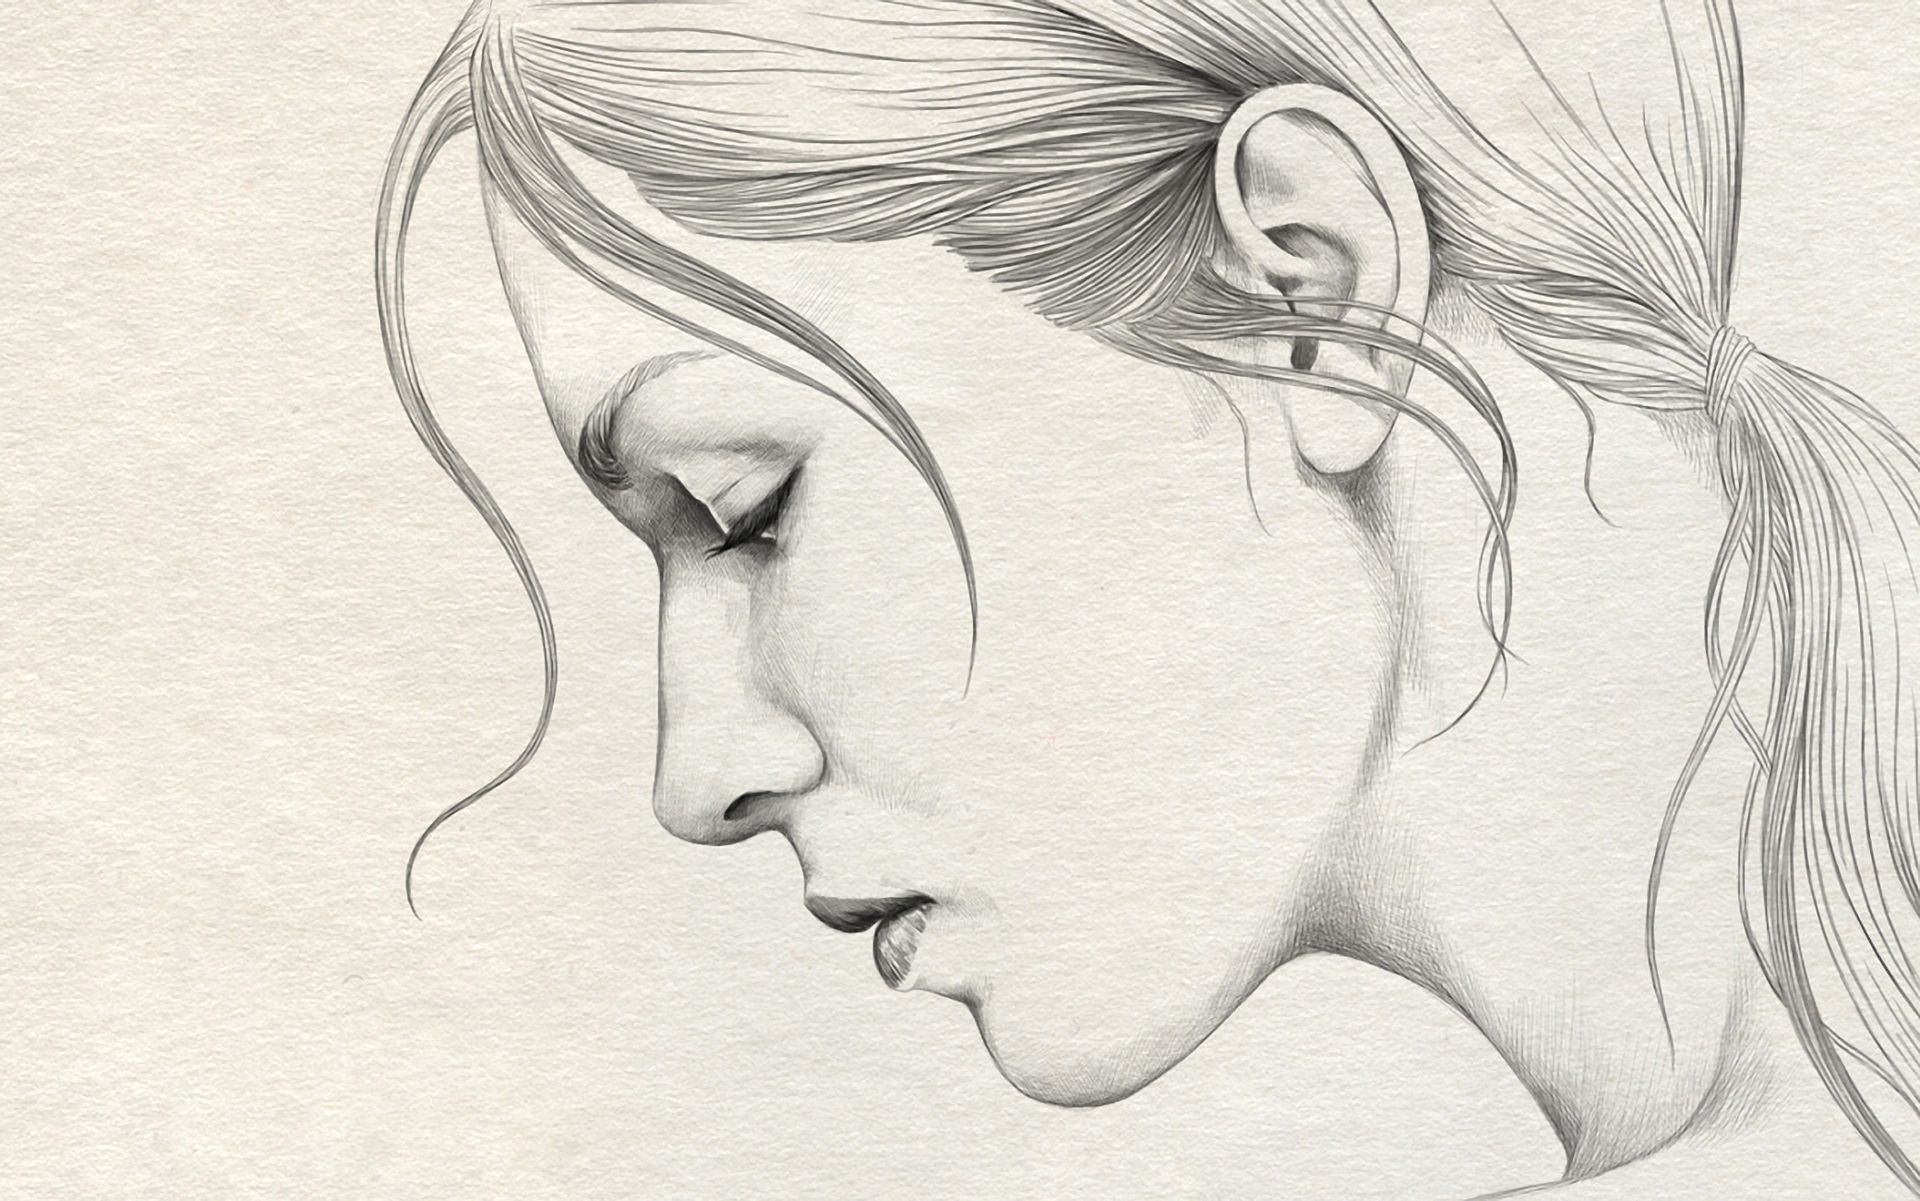 Beatiful sketch drawing woman face profile